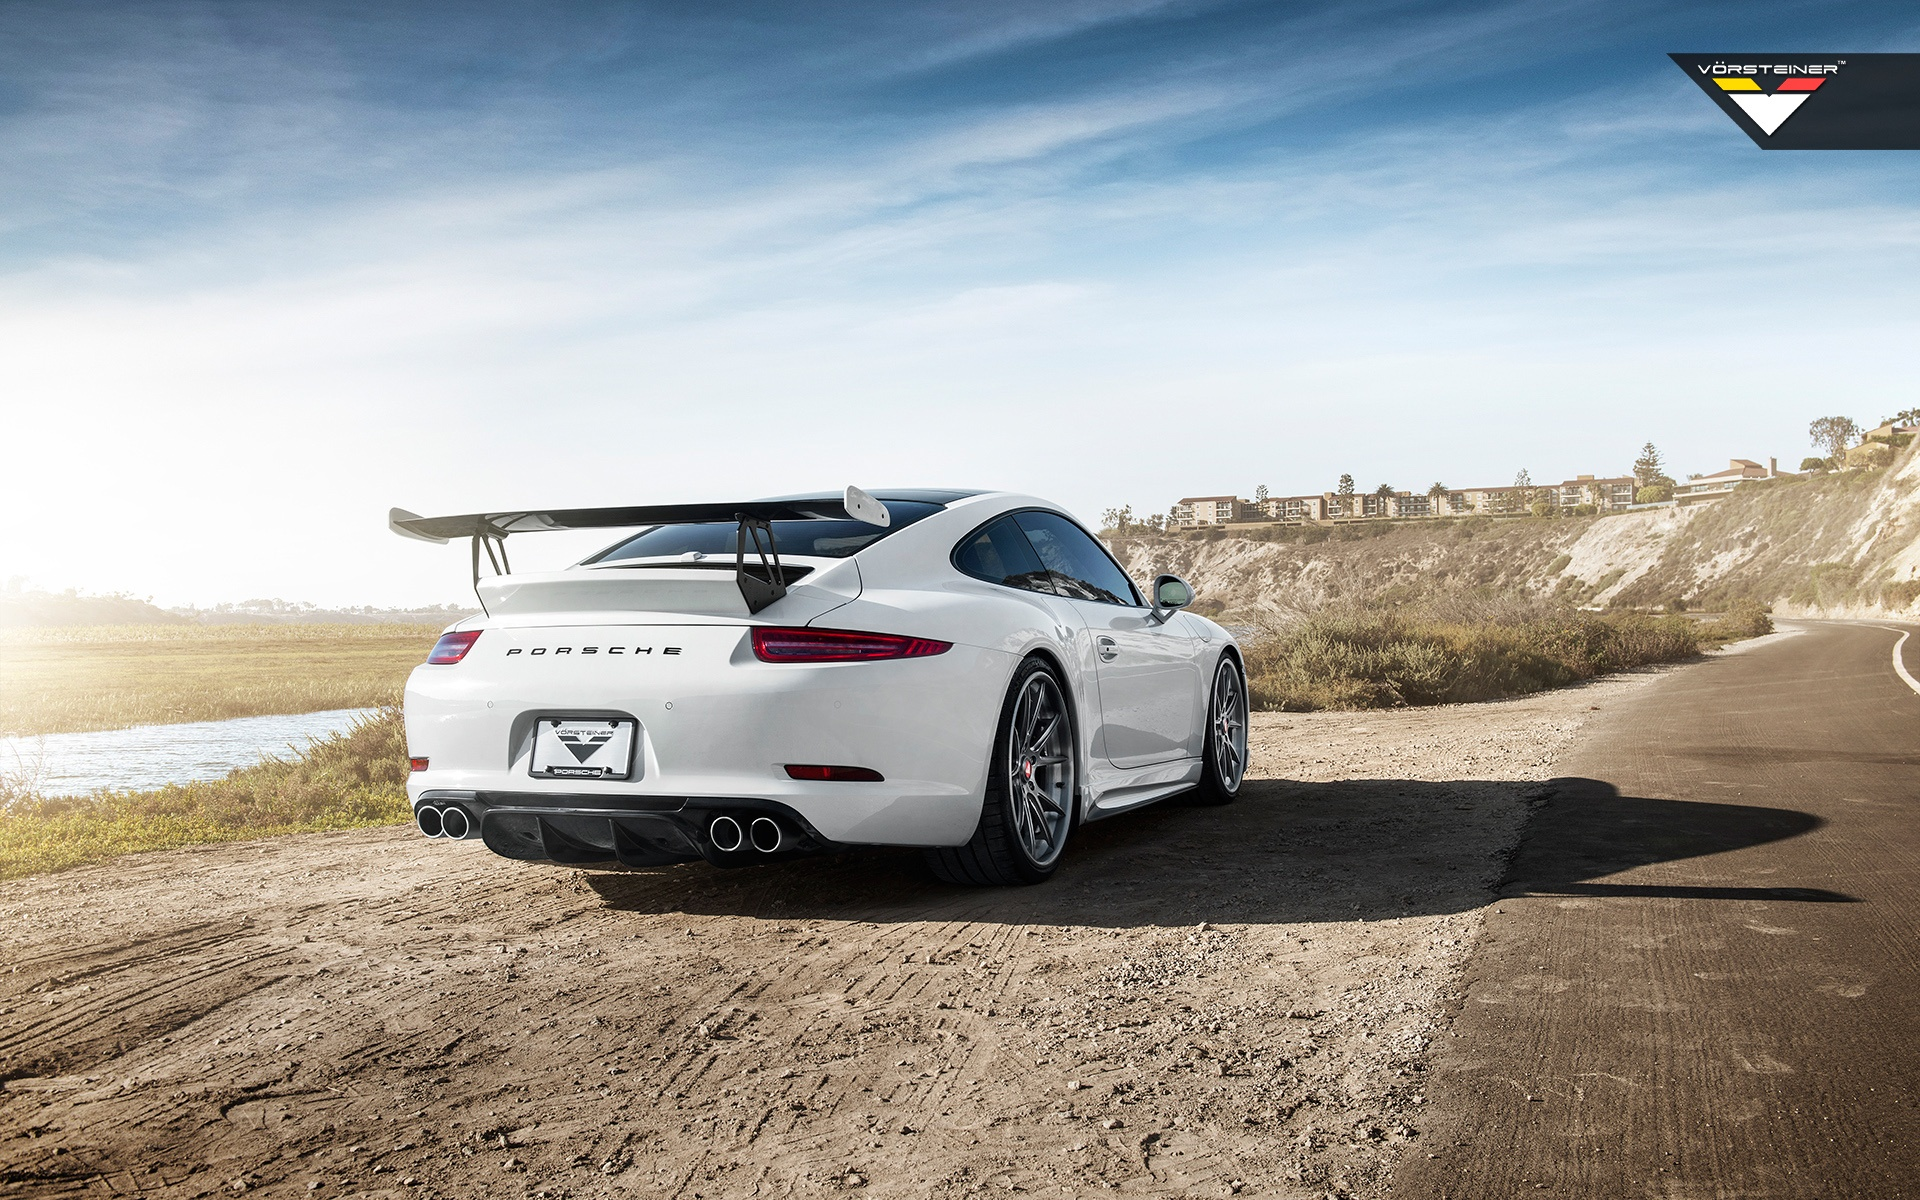 porsche 991 carrera s v gt edition by vorsteiner wallpapers | Free ...